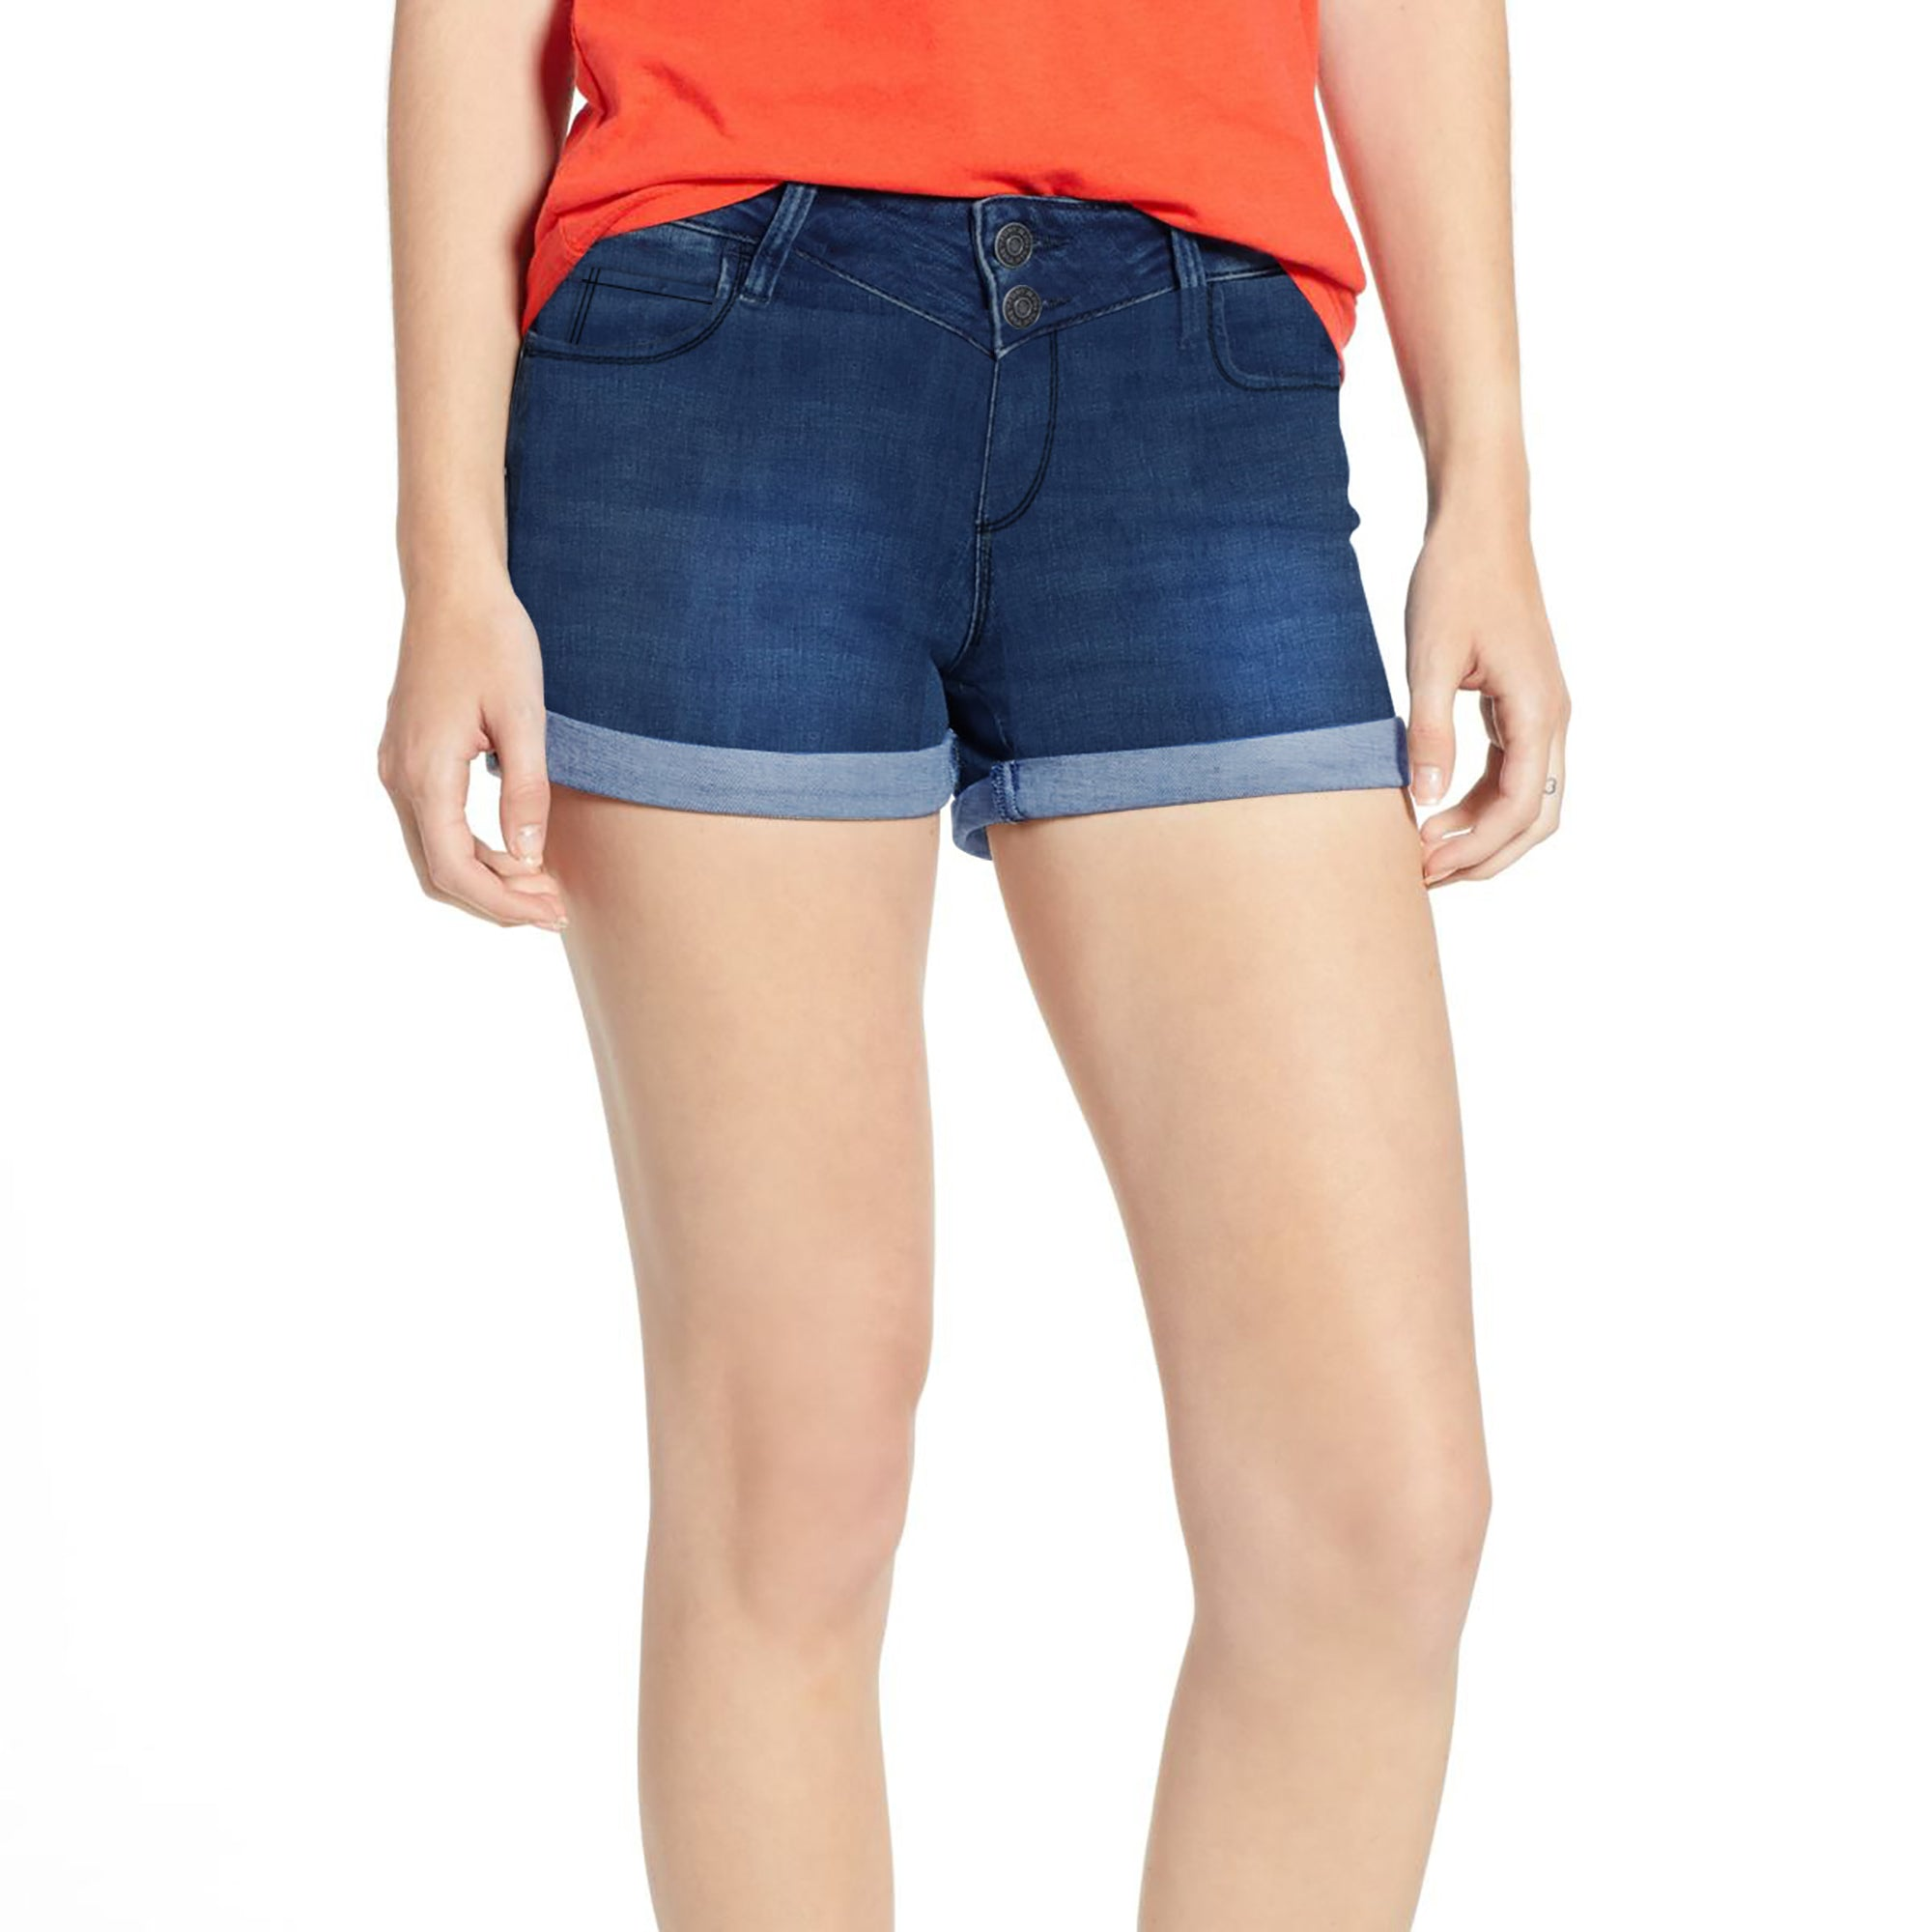 0f622262af Tammy Girl Denim Short For Ladies-Dark Blue Faded-BE7063 - BrandsEgo